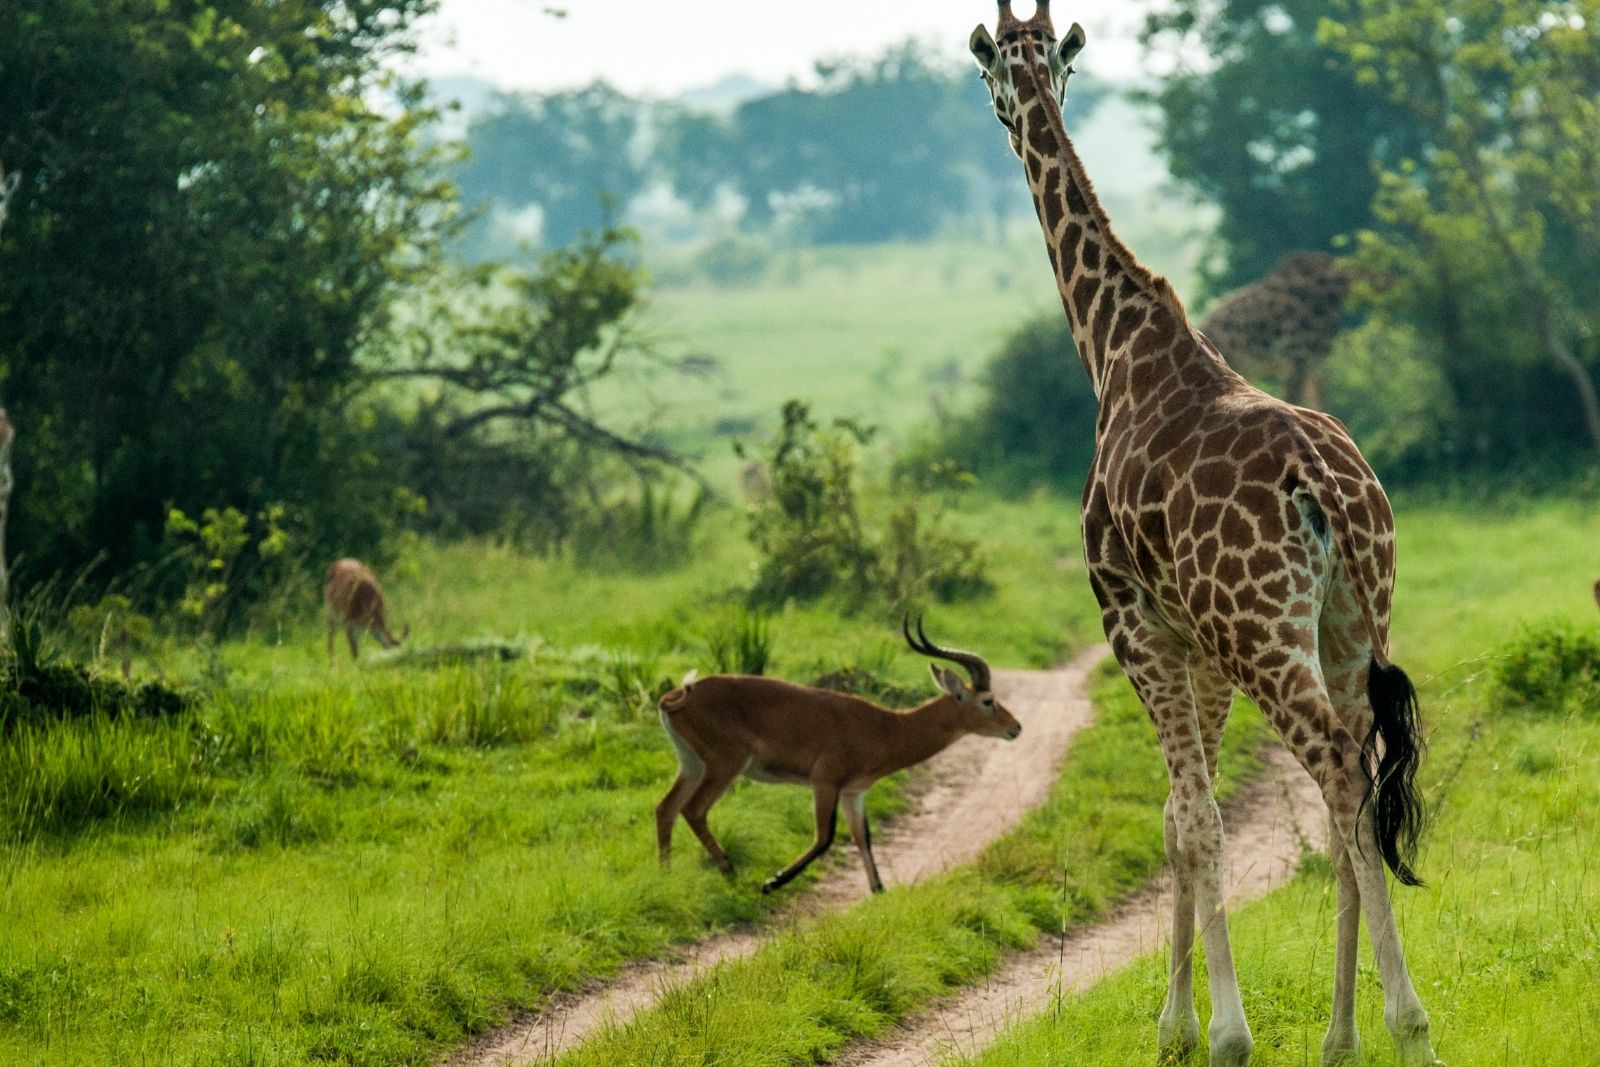 Day 10: North Bound to Murchison Falls National Park